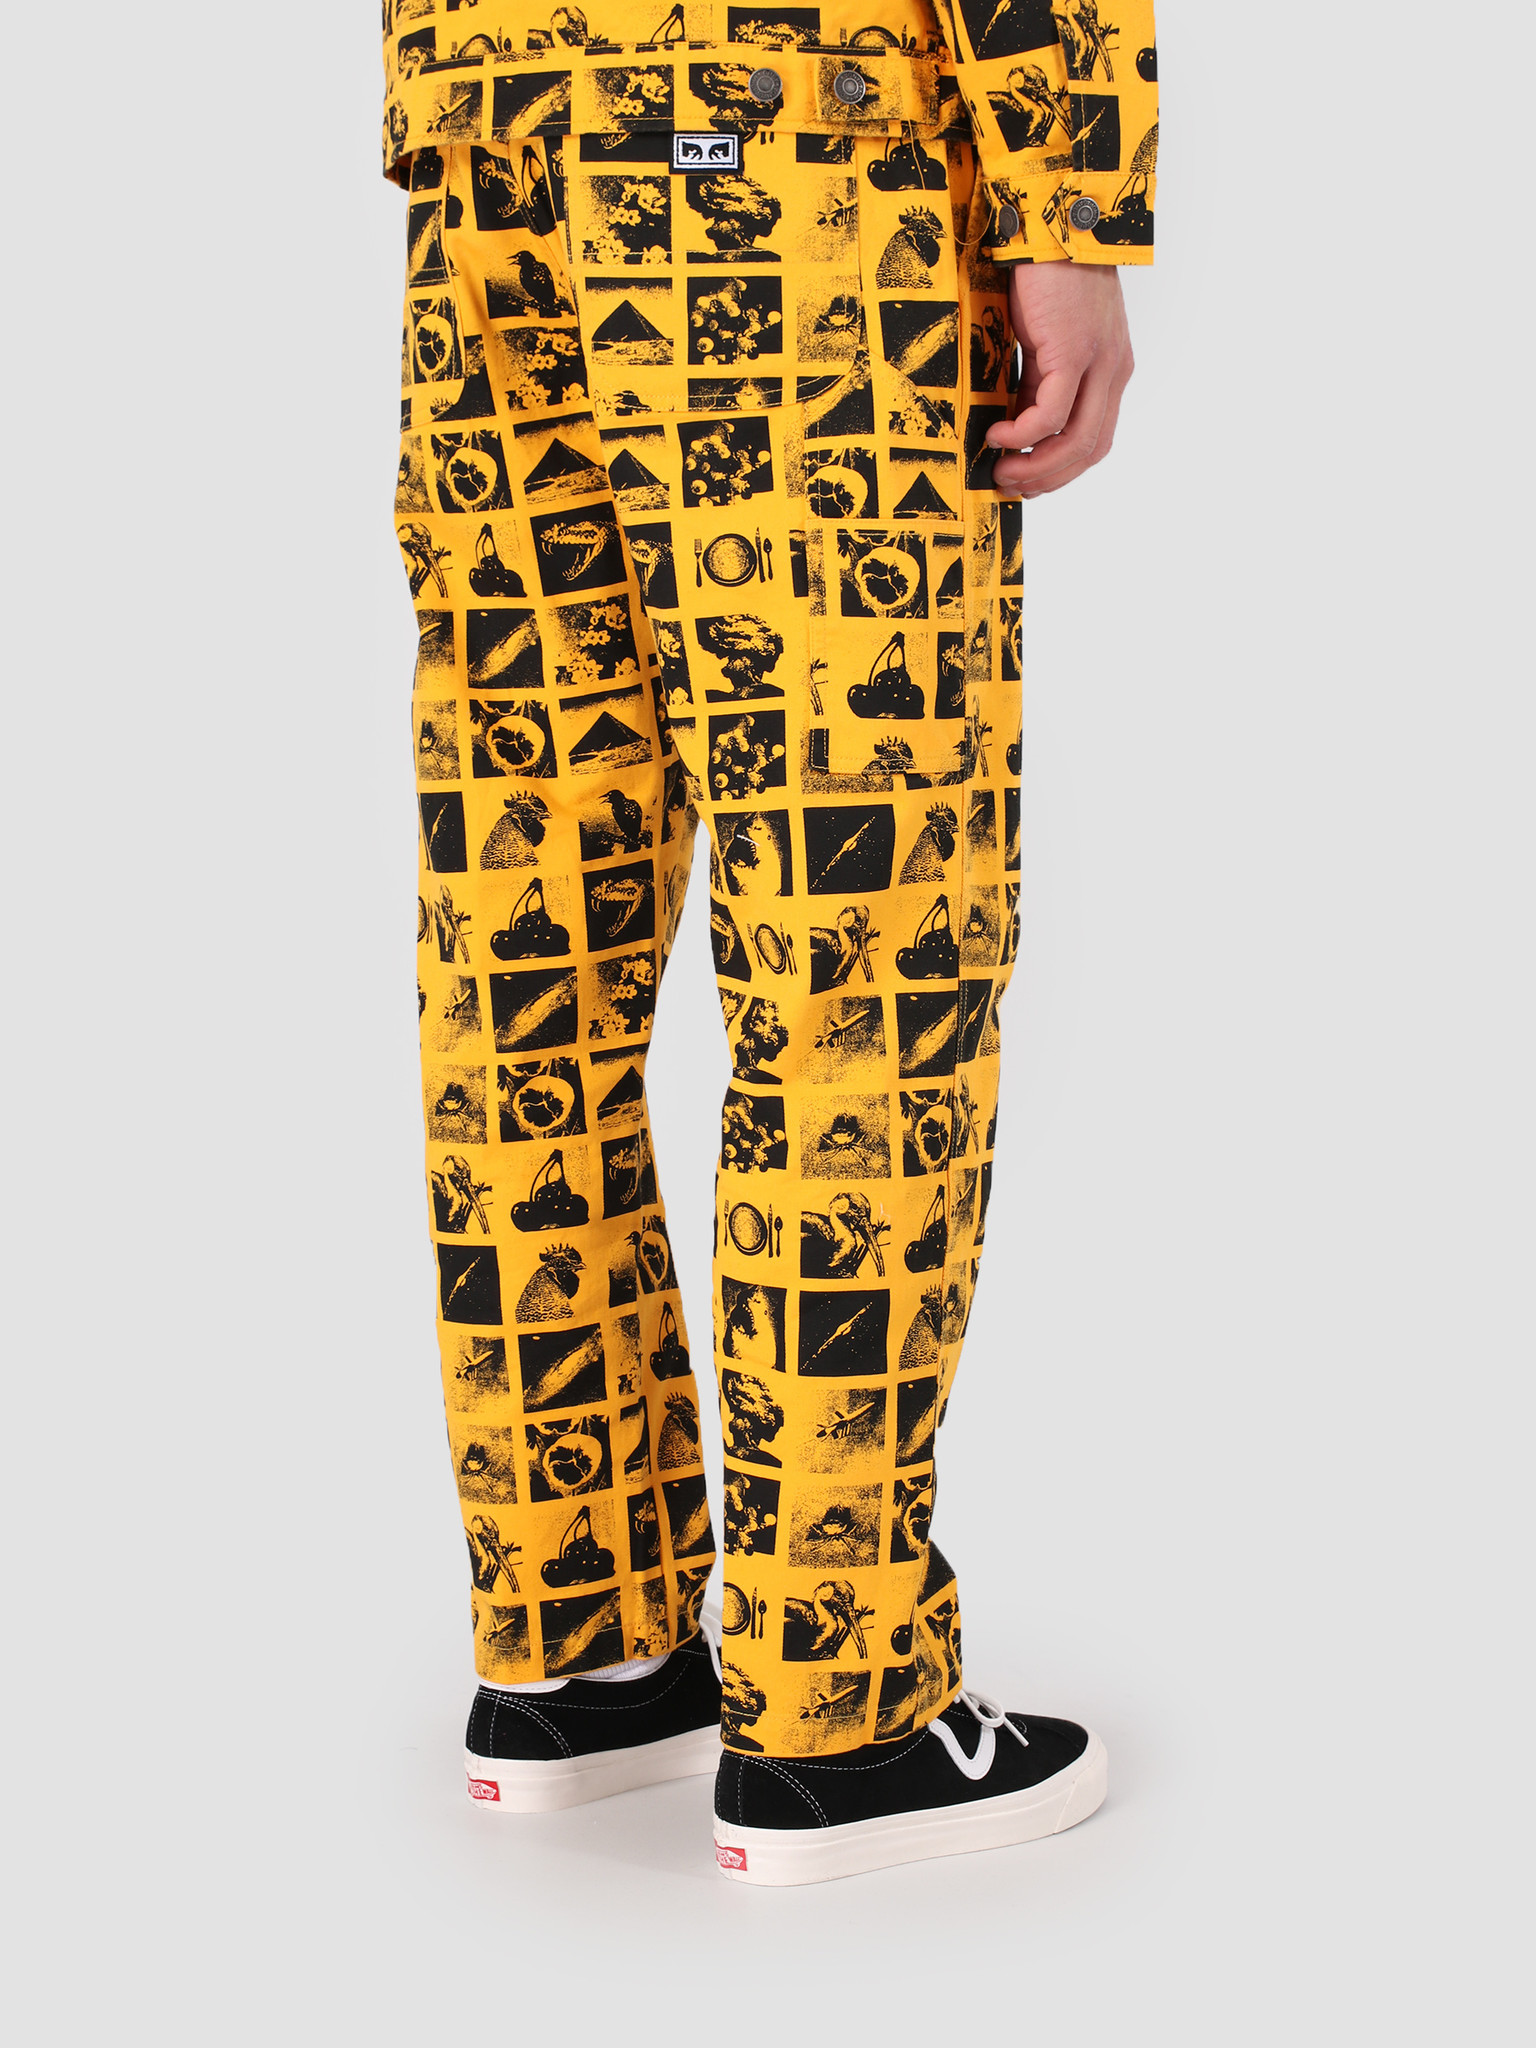 Obey Obey Hardwork Chaos Pant YEL 142020136